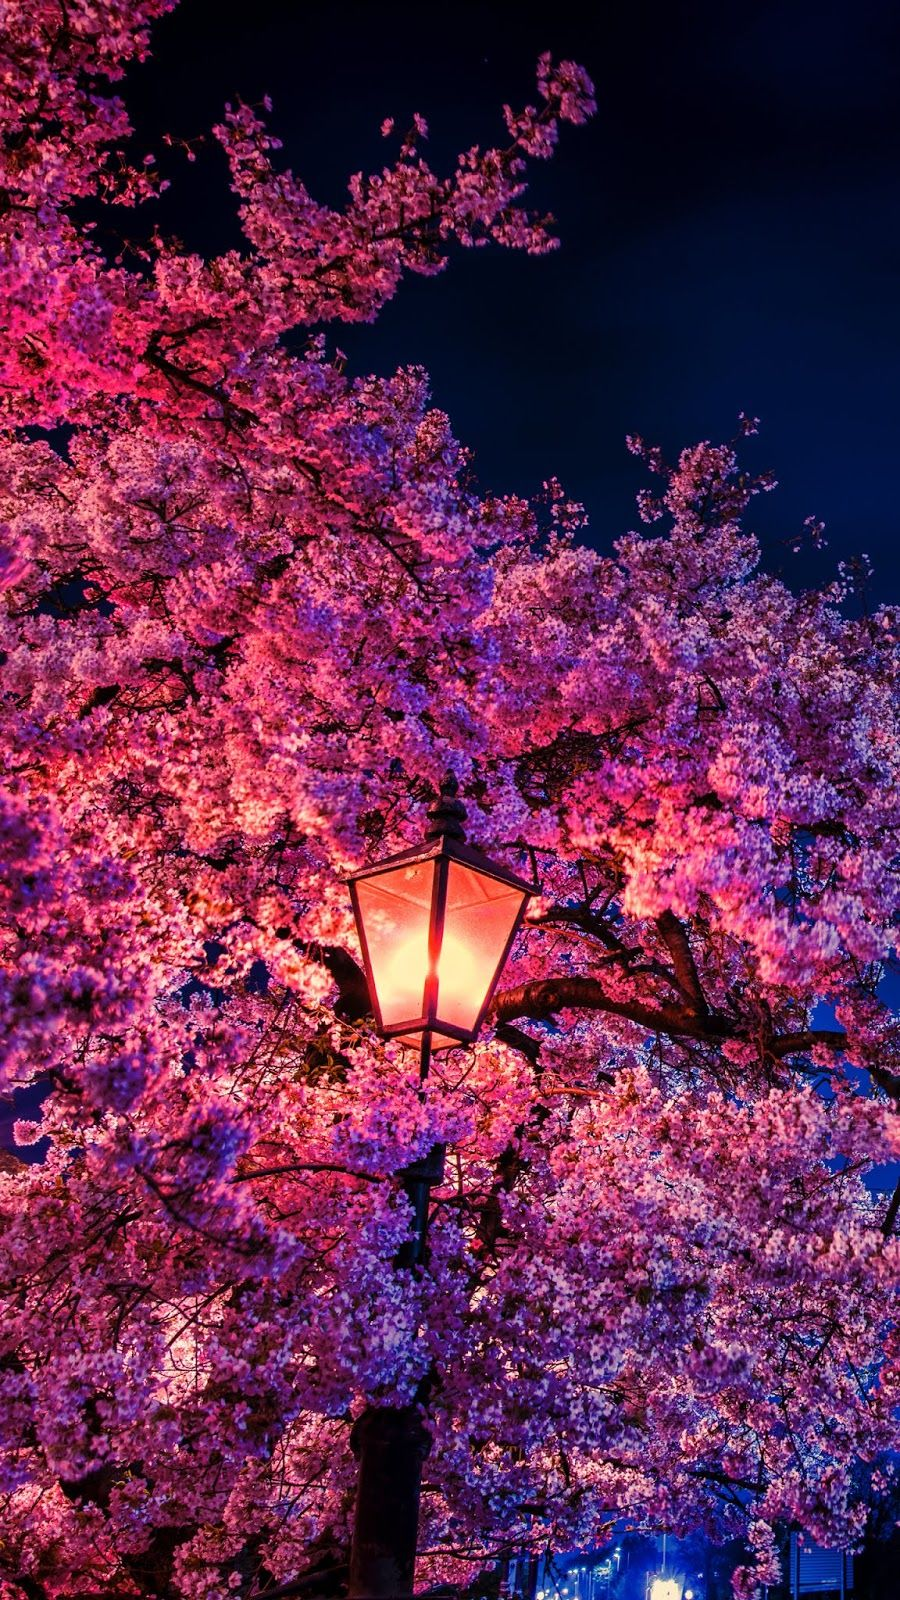 Cherry Blossom In The Night Wallpaper Iphone Android Background Followme Cherry Blossom Wallpaper Cherry Blossom Wallpaper Iphone Aesthetic Wallpapers